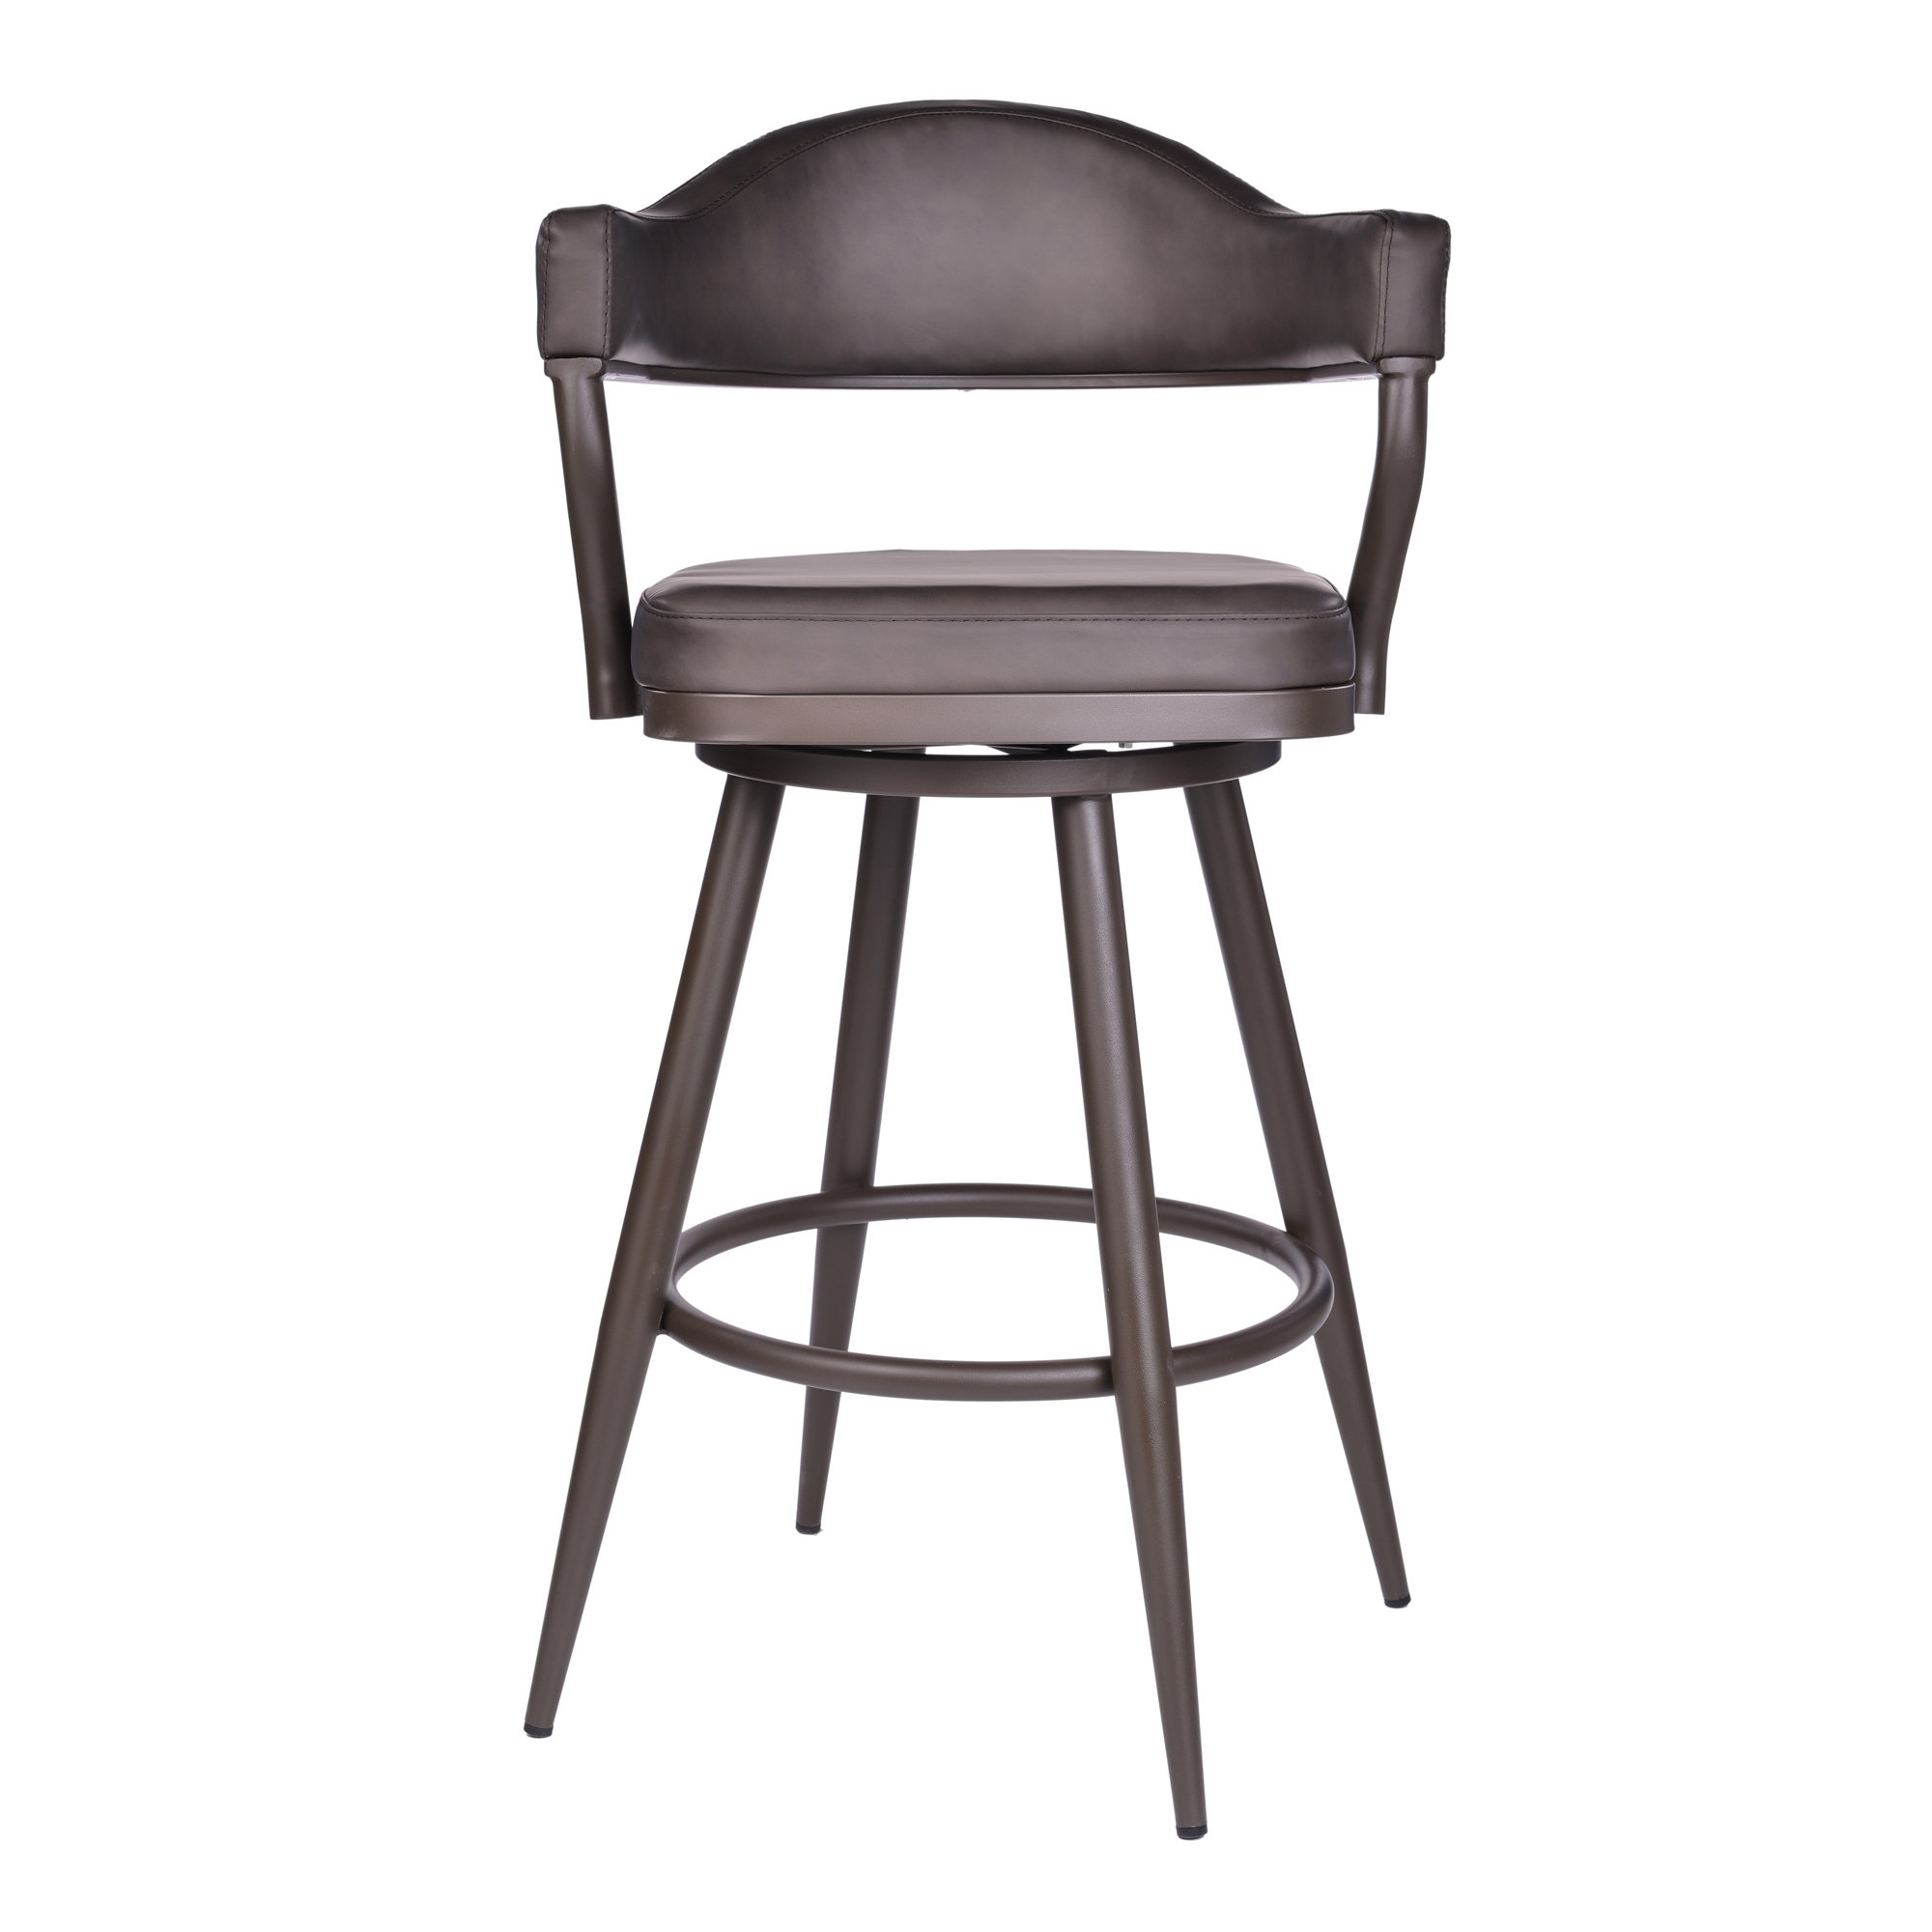 Wayfair Pertaining To 2017 Norwood Upholstered Side Chairs (View 19 of 20)